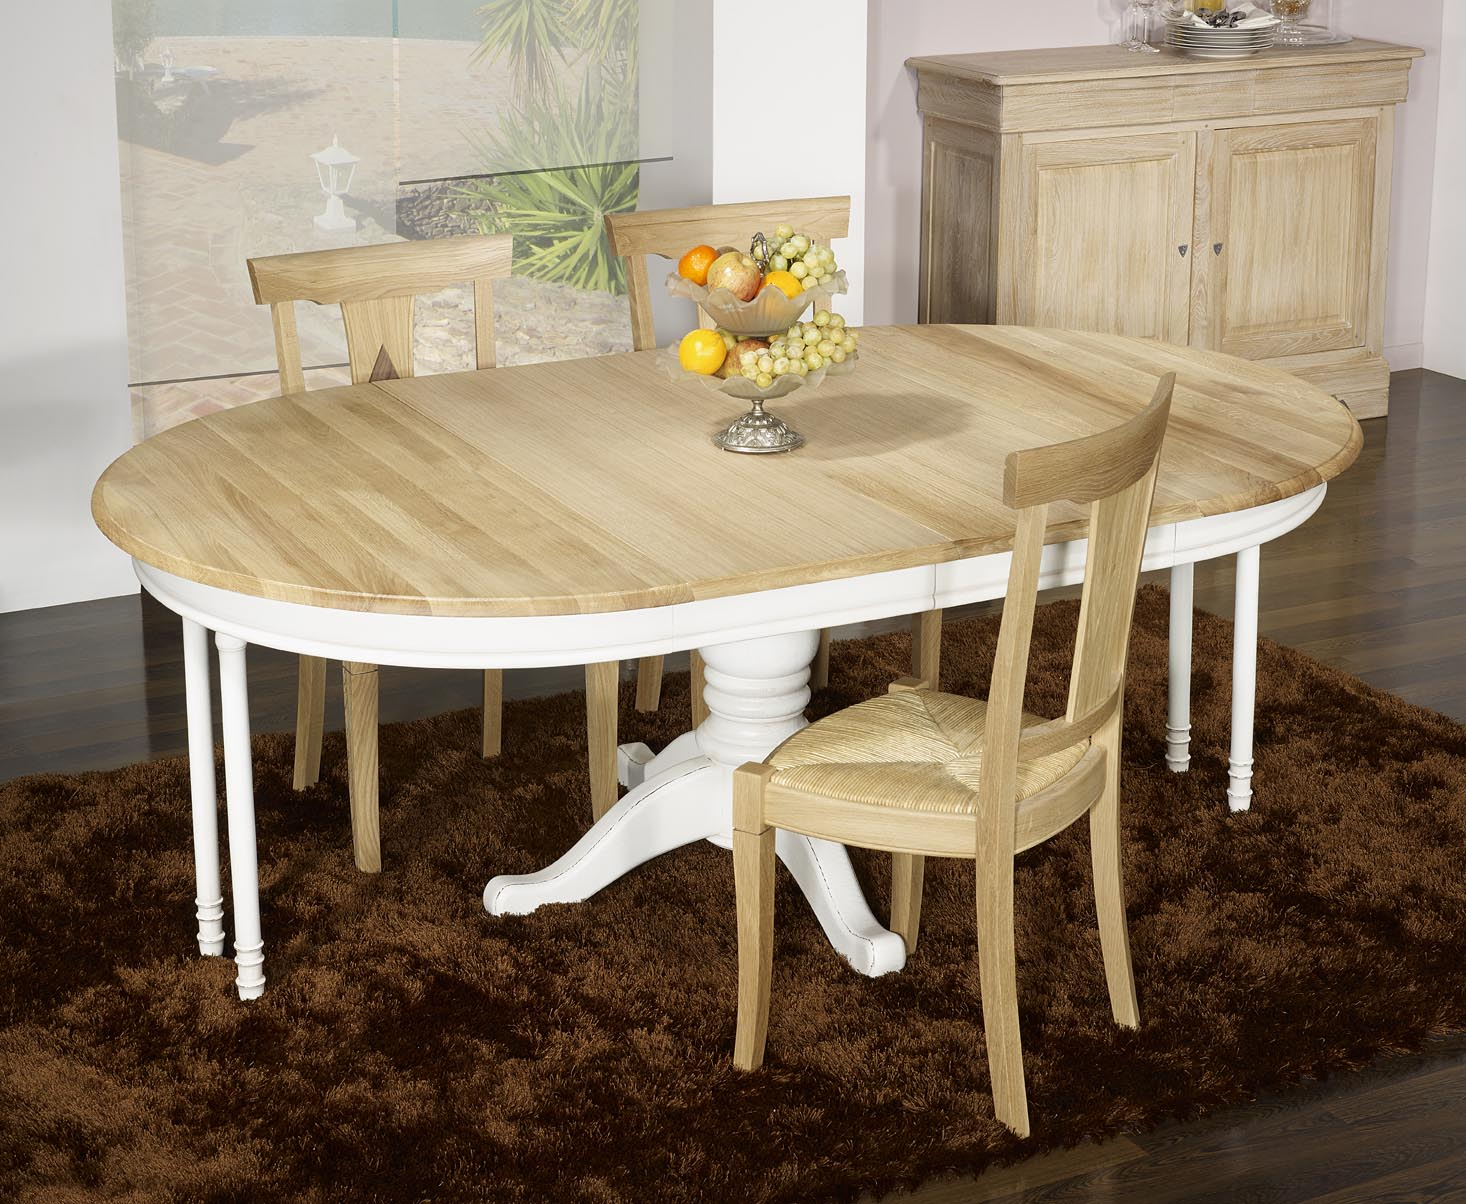 Table ronde pied central en ch ne massif de style louis - Pied central de table ...